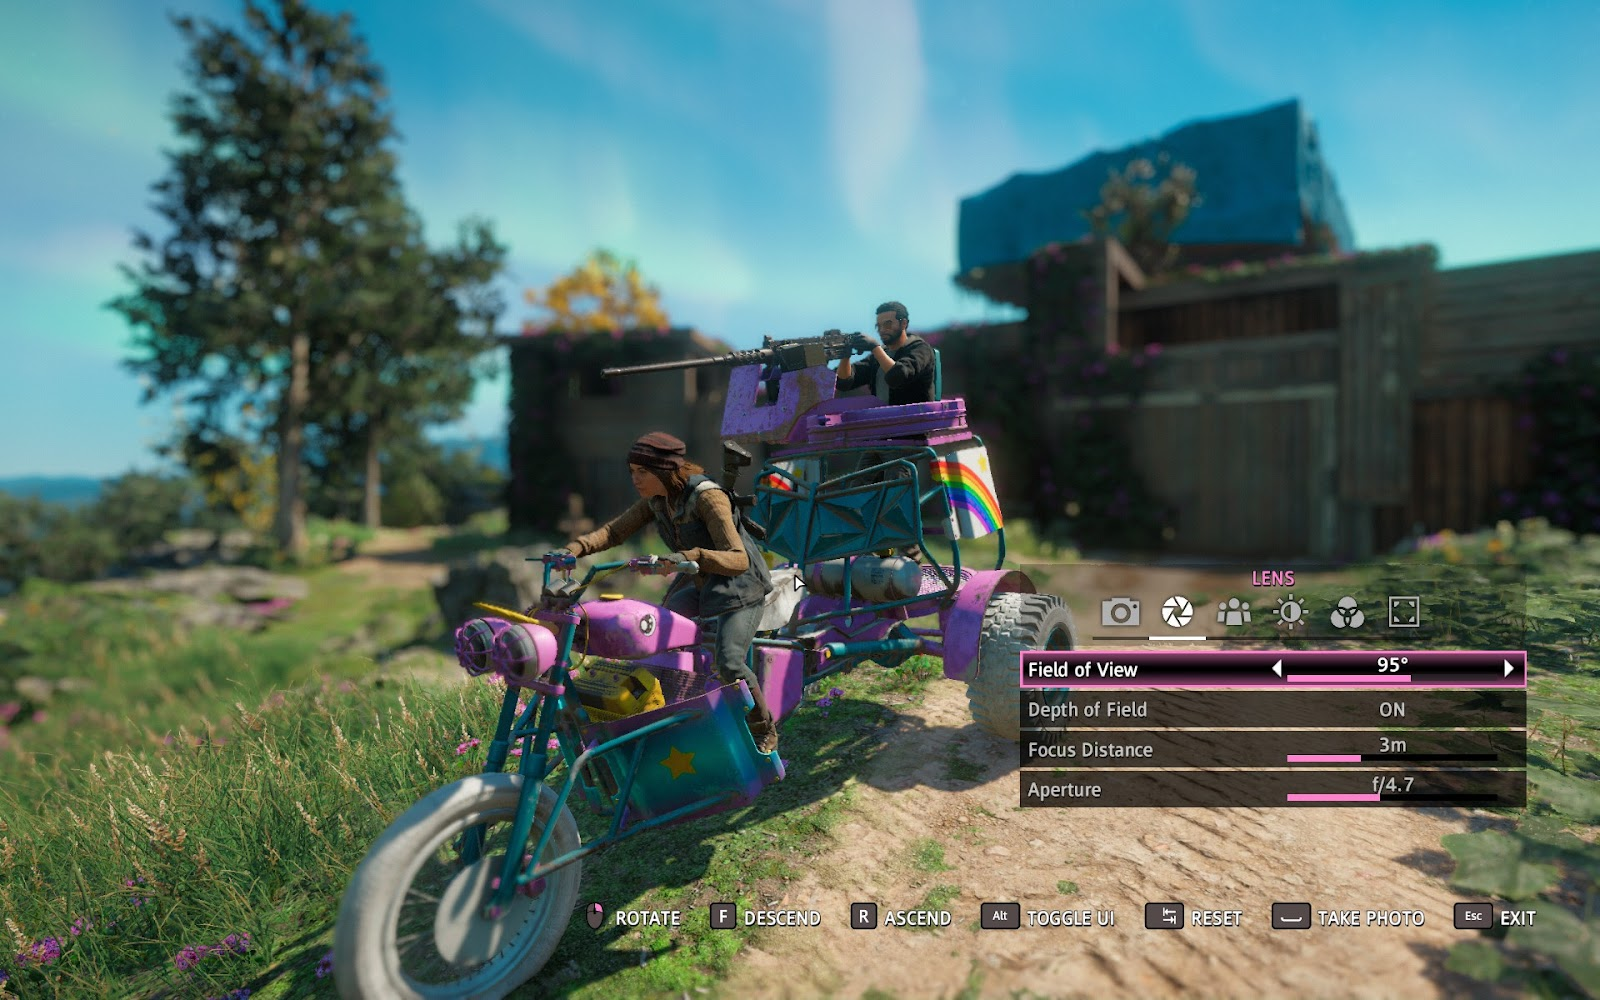 Photo mode interface and a picture of the main character riding a pink bike